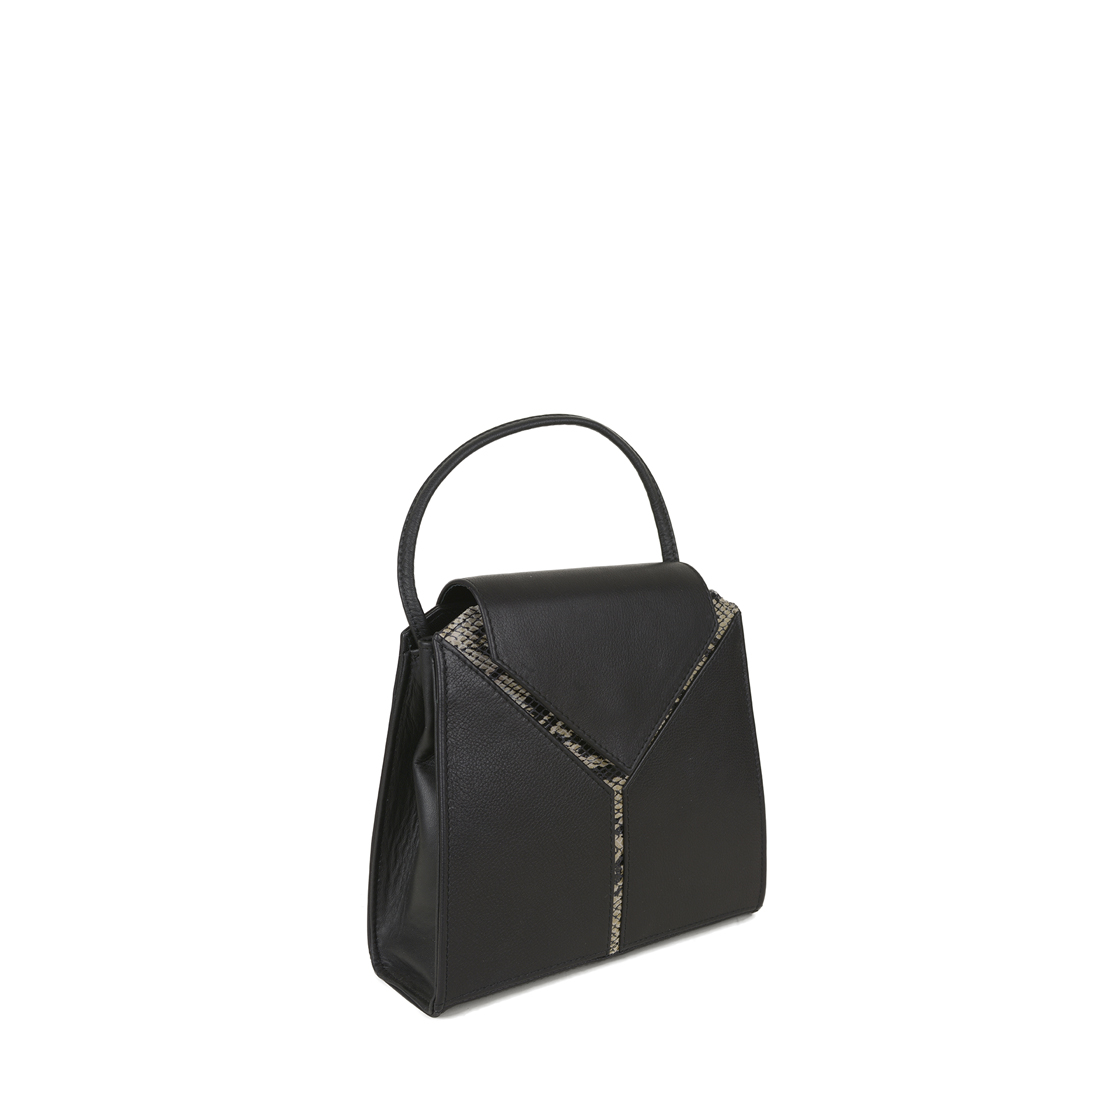 Yasmin Black Cream Python Evening Shoulder Bag